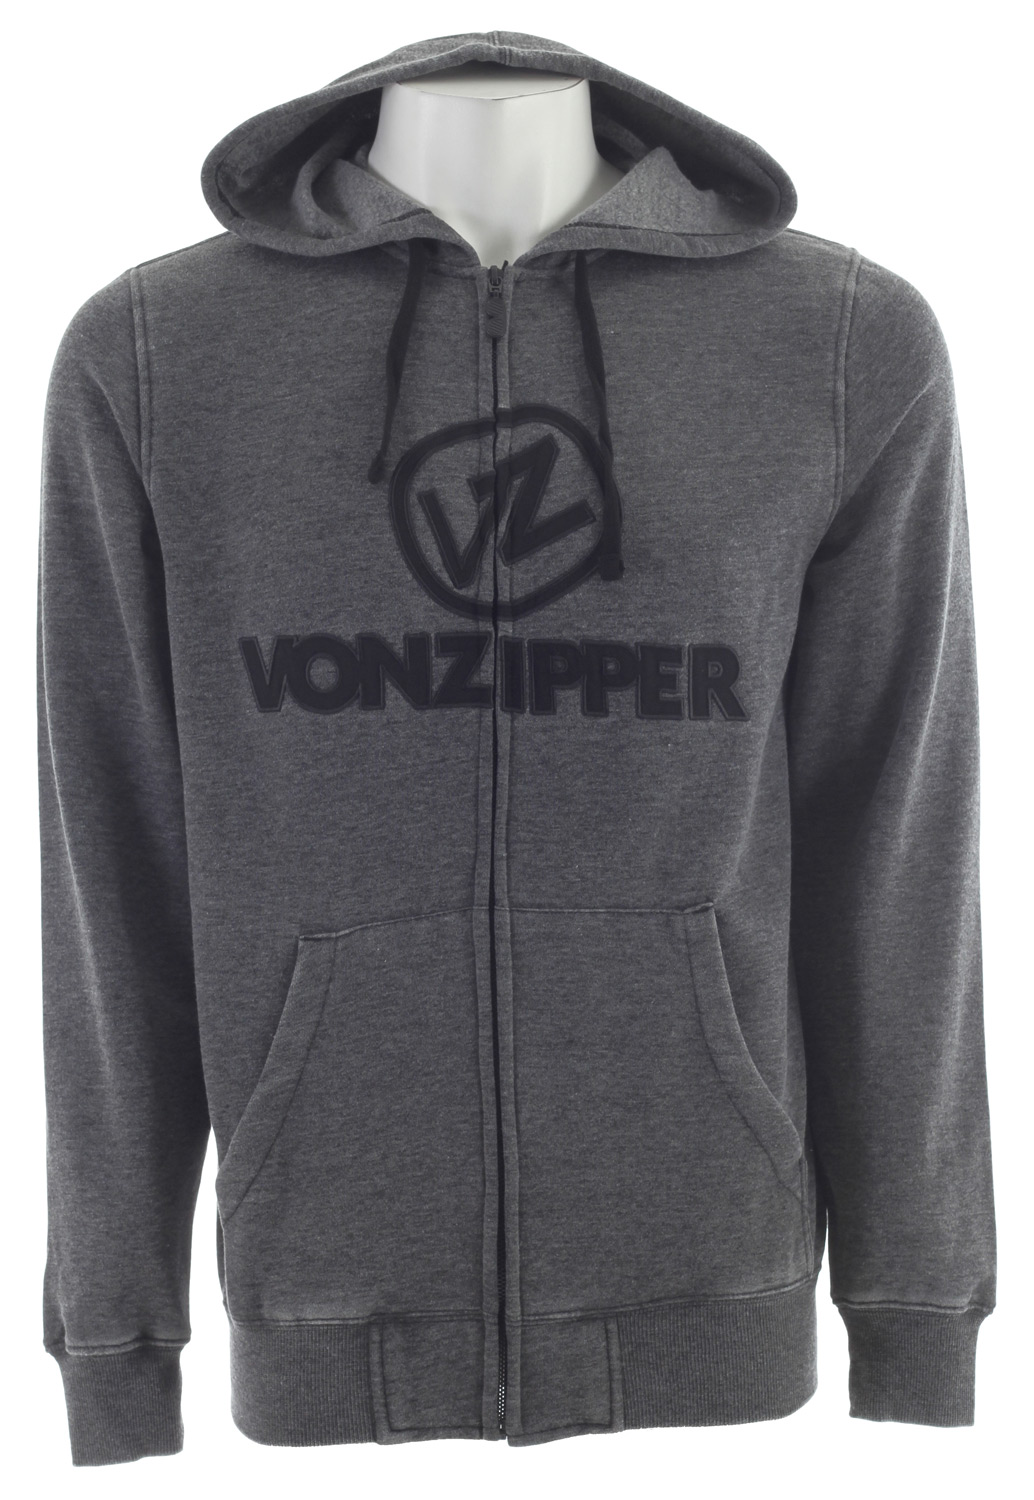 Key Features of the Vonzipper Exhaust Hoodie:60/40 Cotton Poly Fleece - $37.95